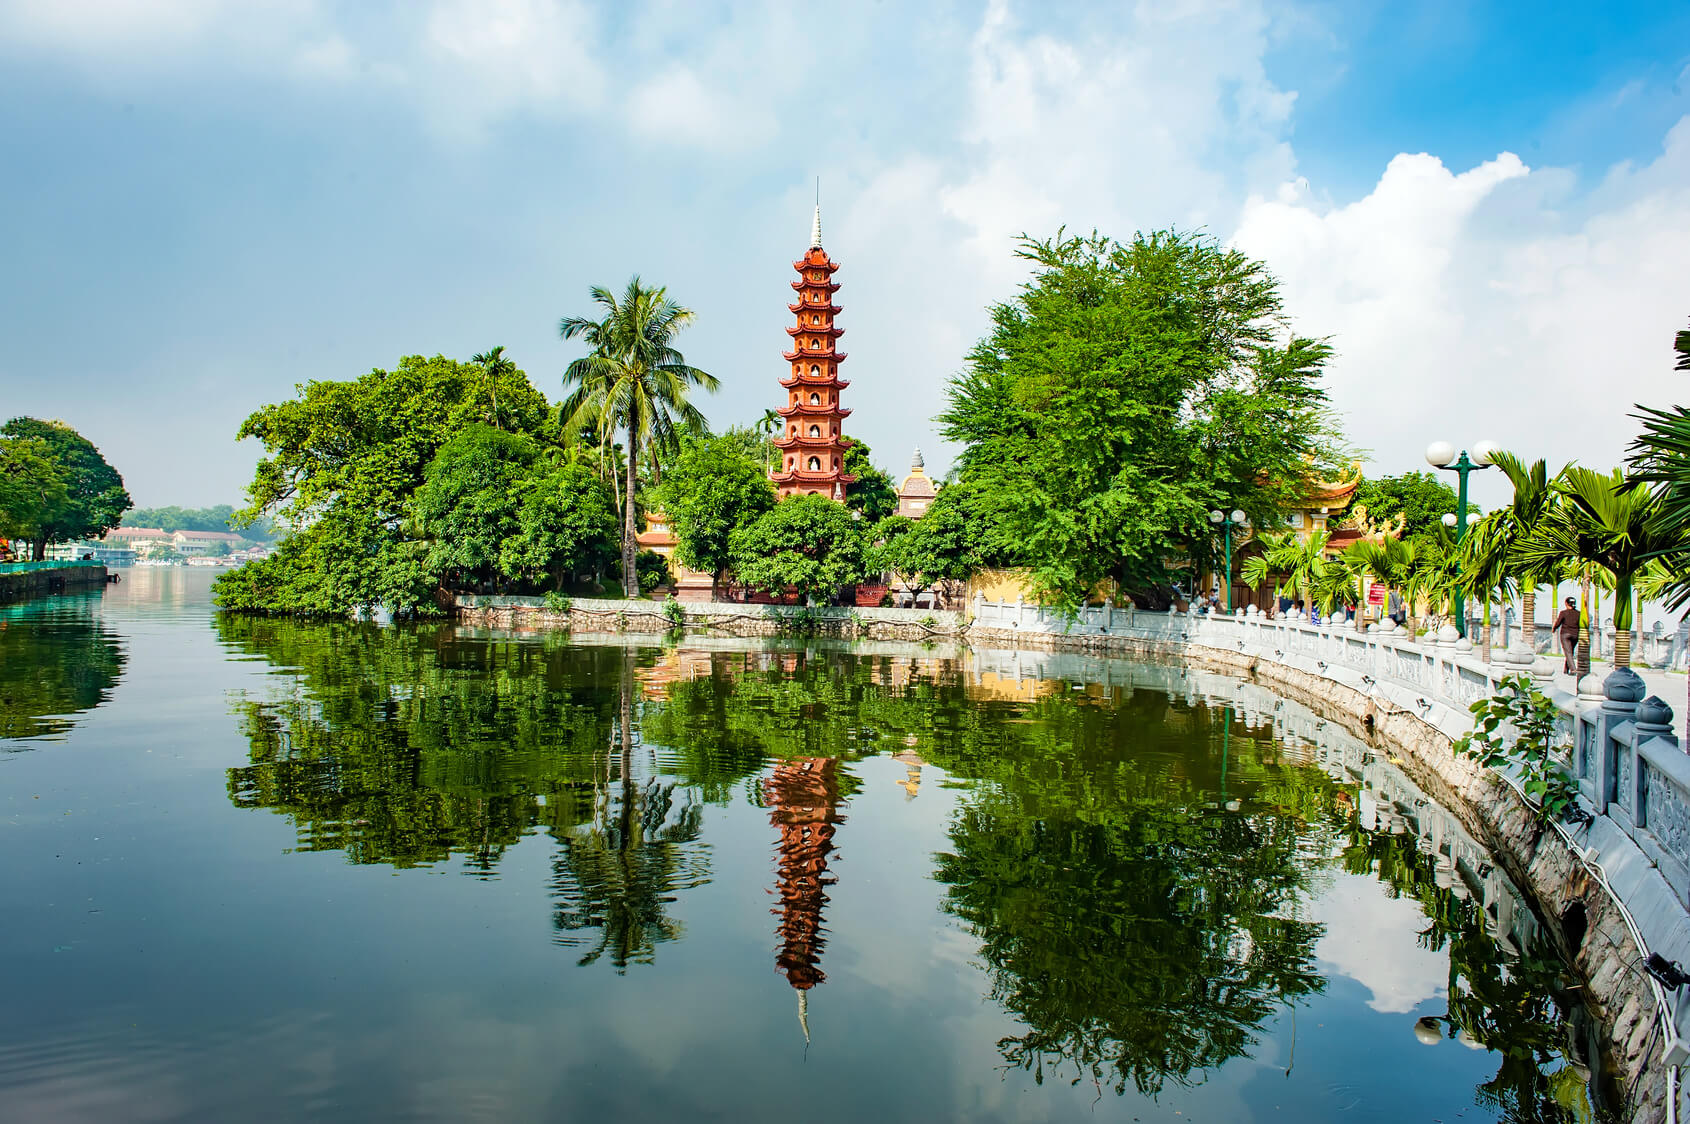 Vietnam - 5 CHEAPEST PLACES TO TEACH ENGLISH ABROAD